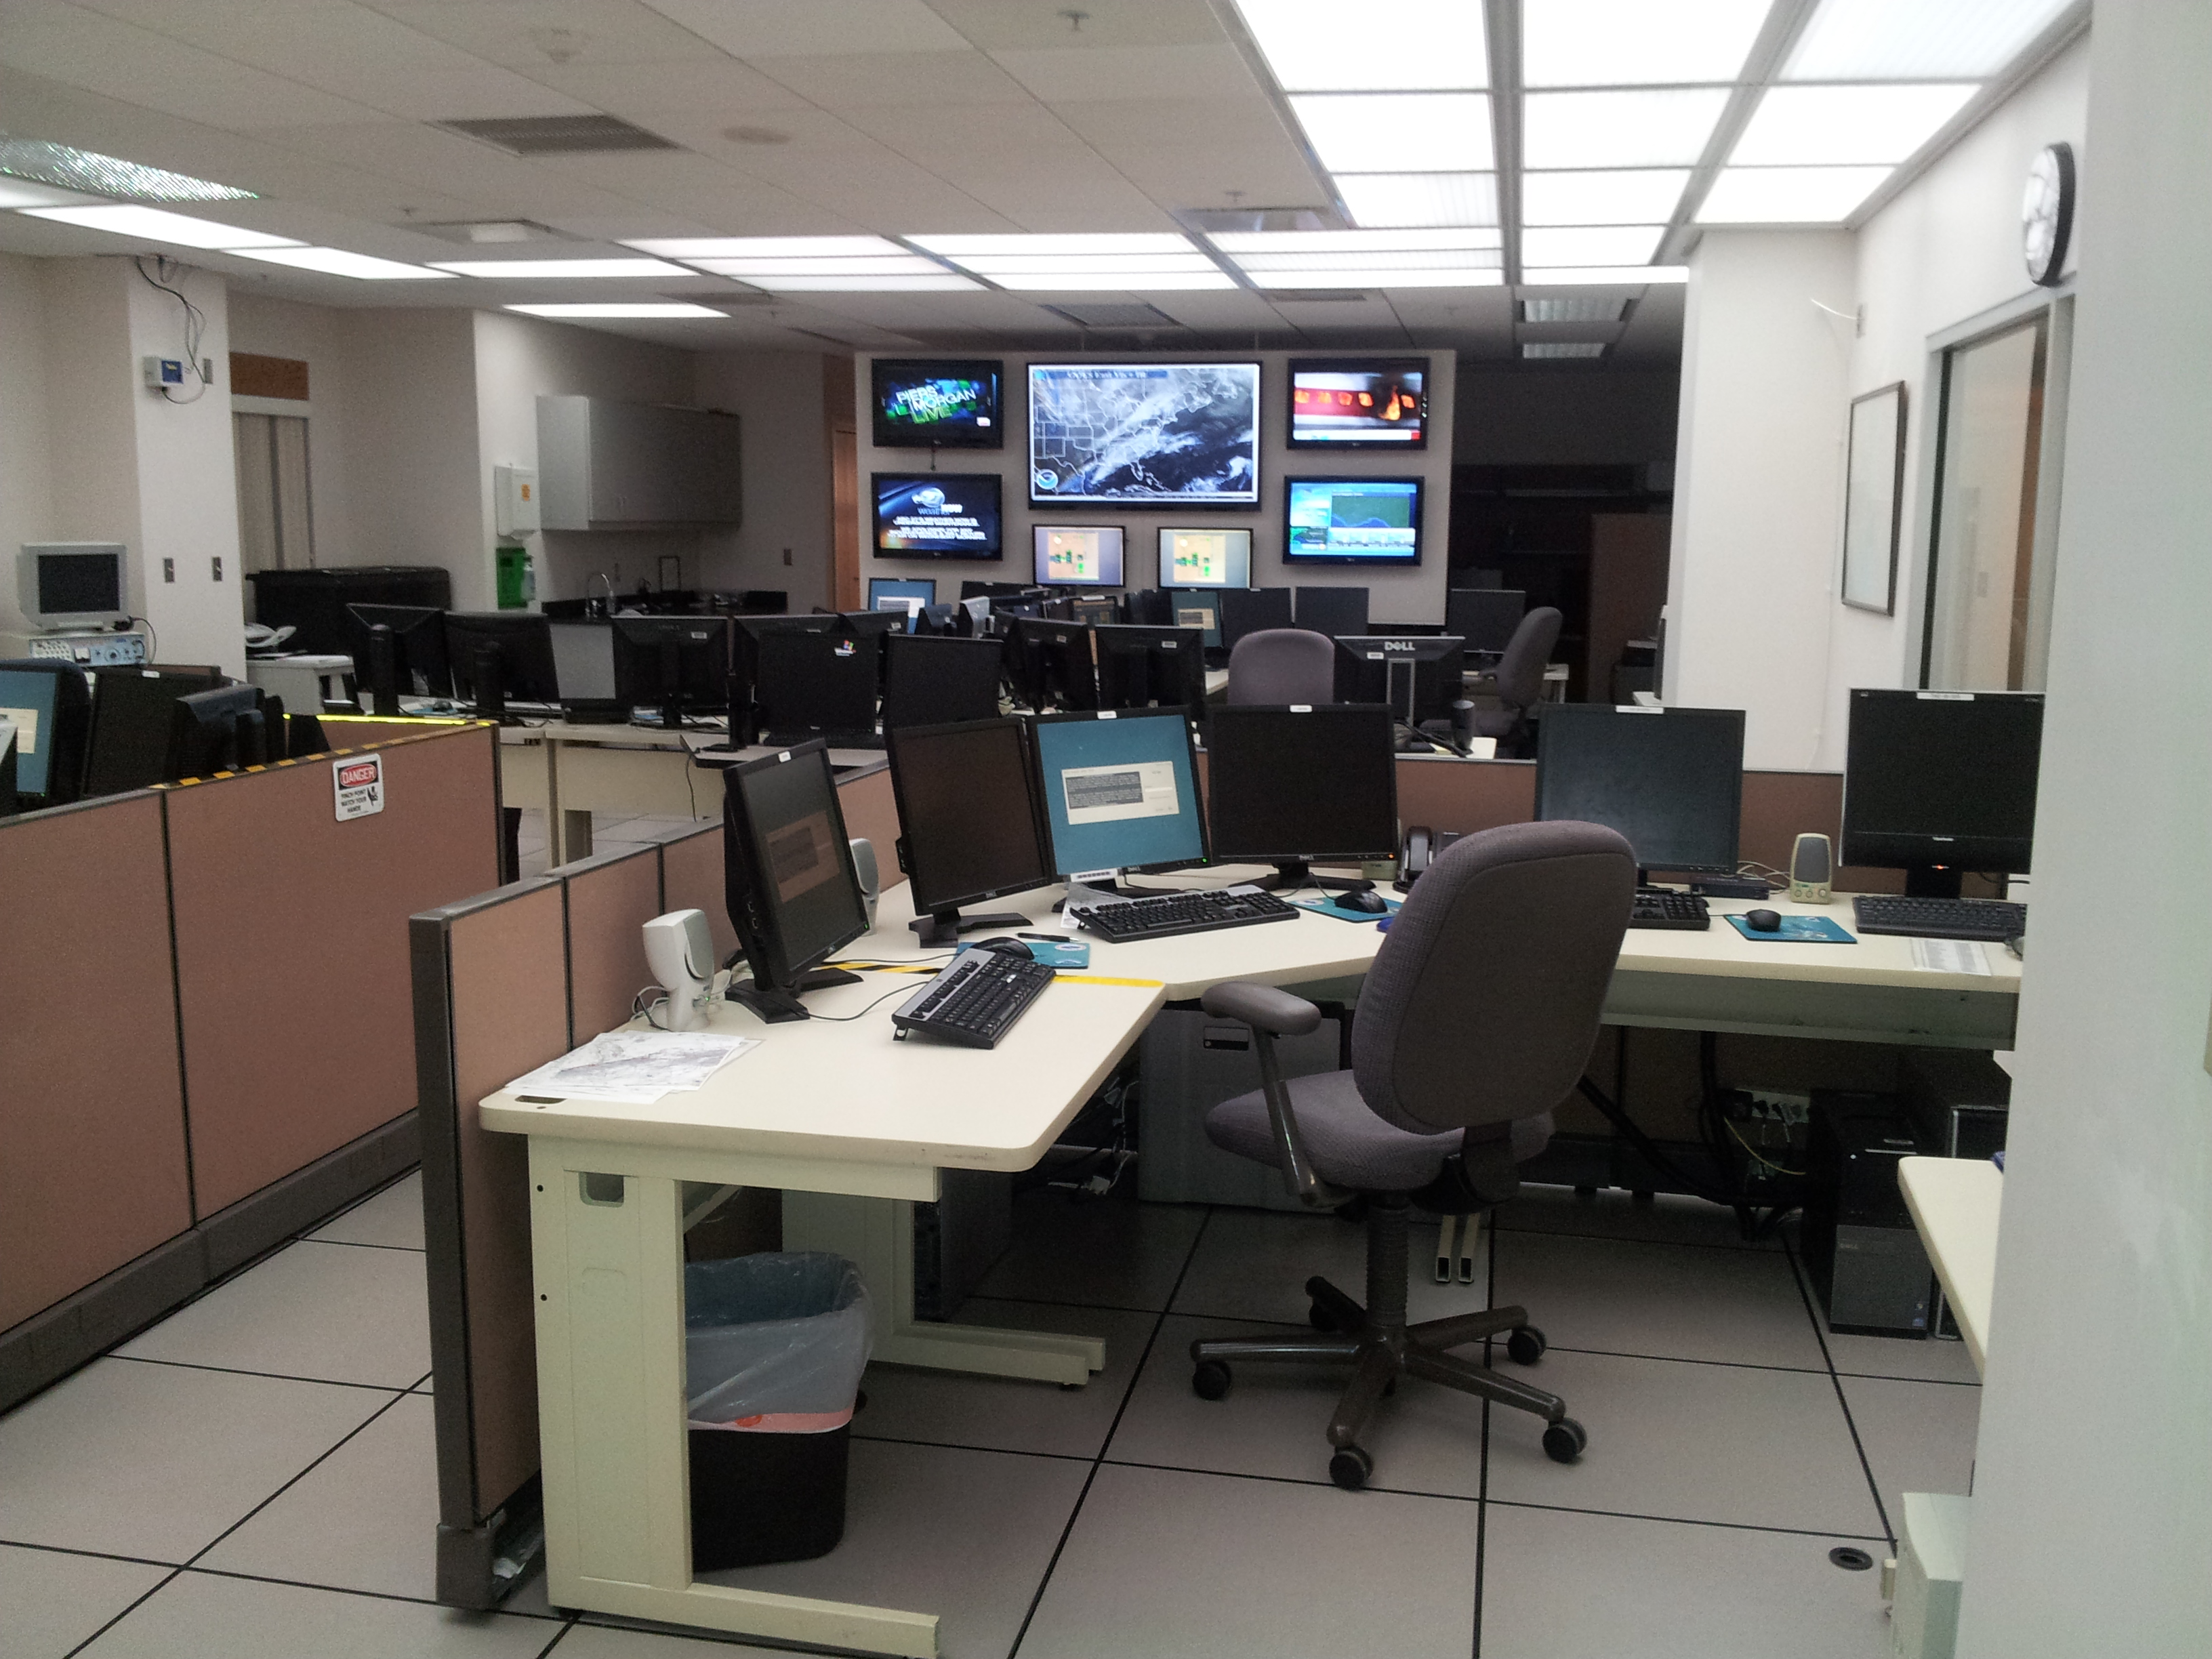 A photo of the main operations room in the forecast office.